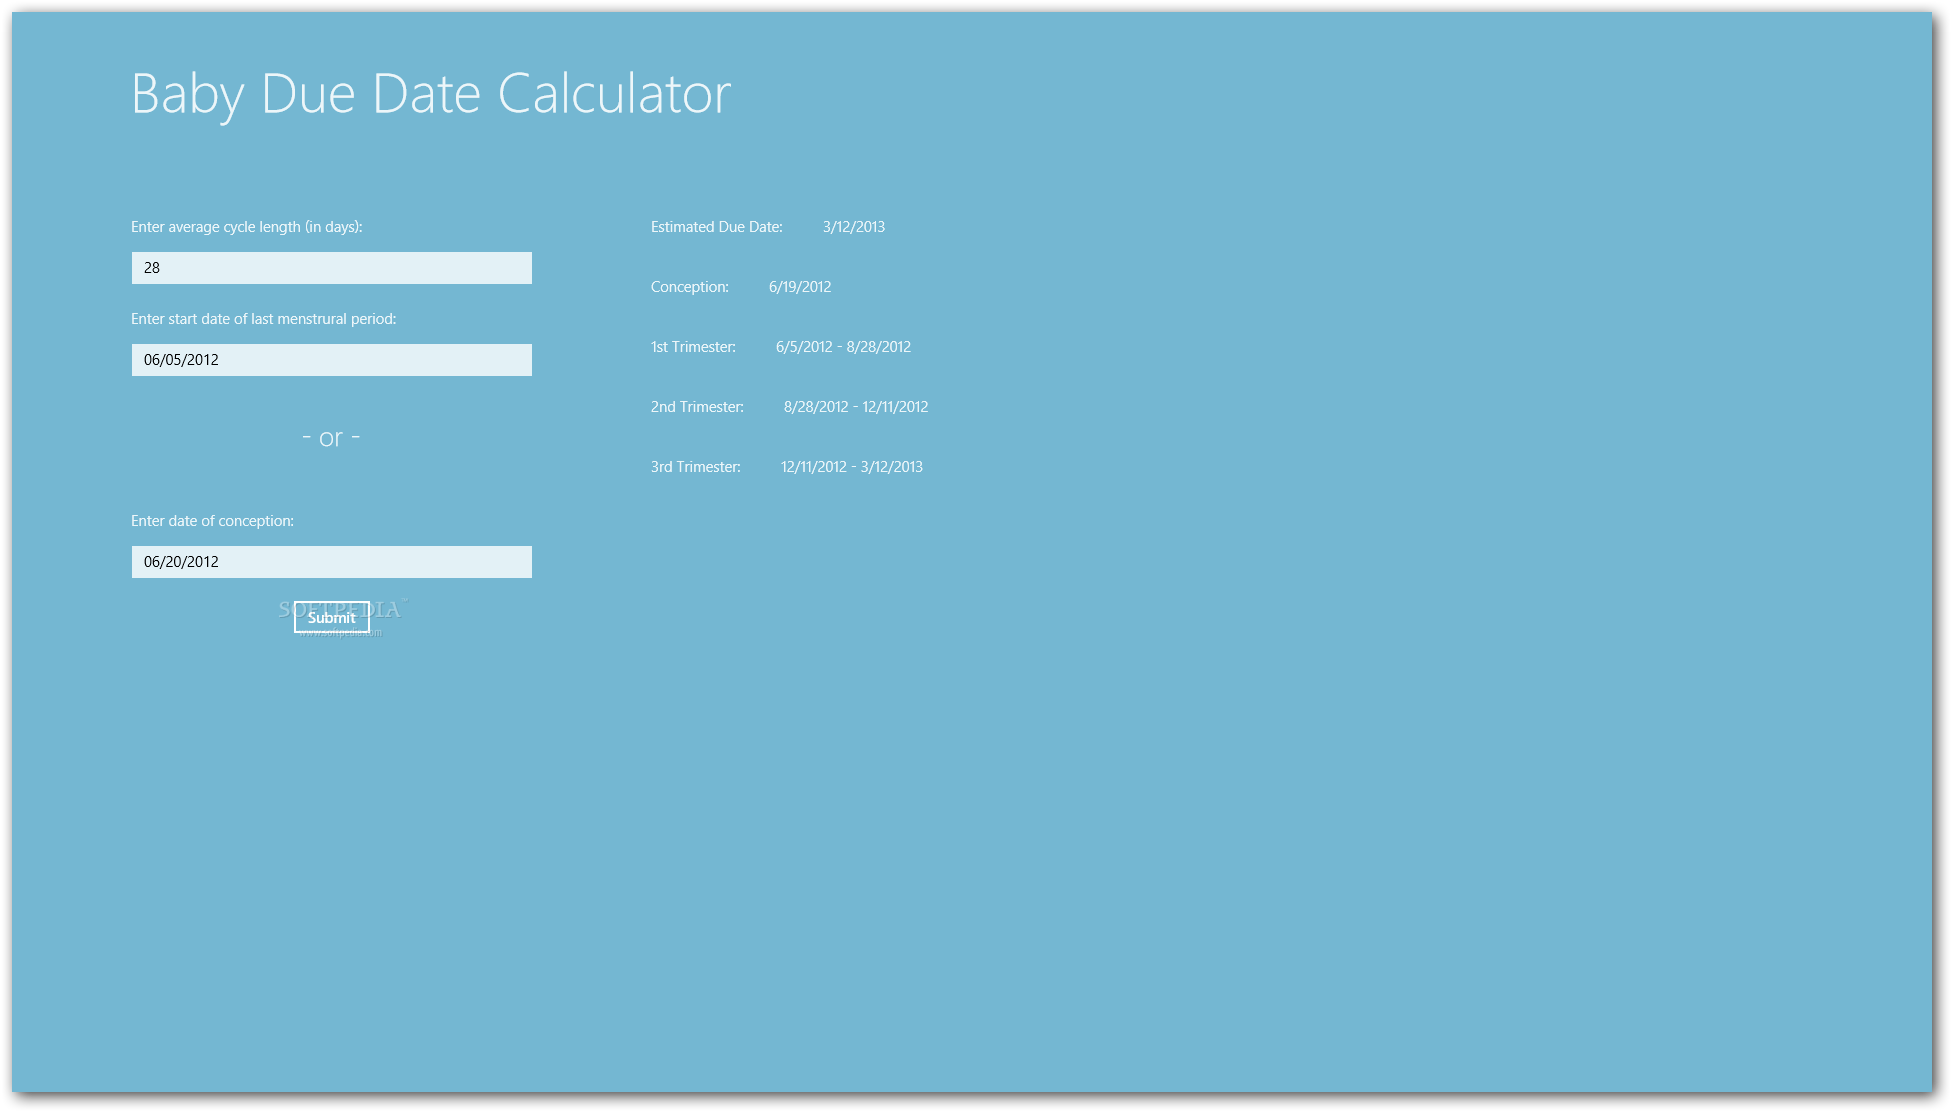 Due date calculator by conception date in Perth